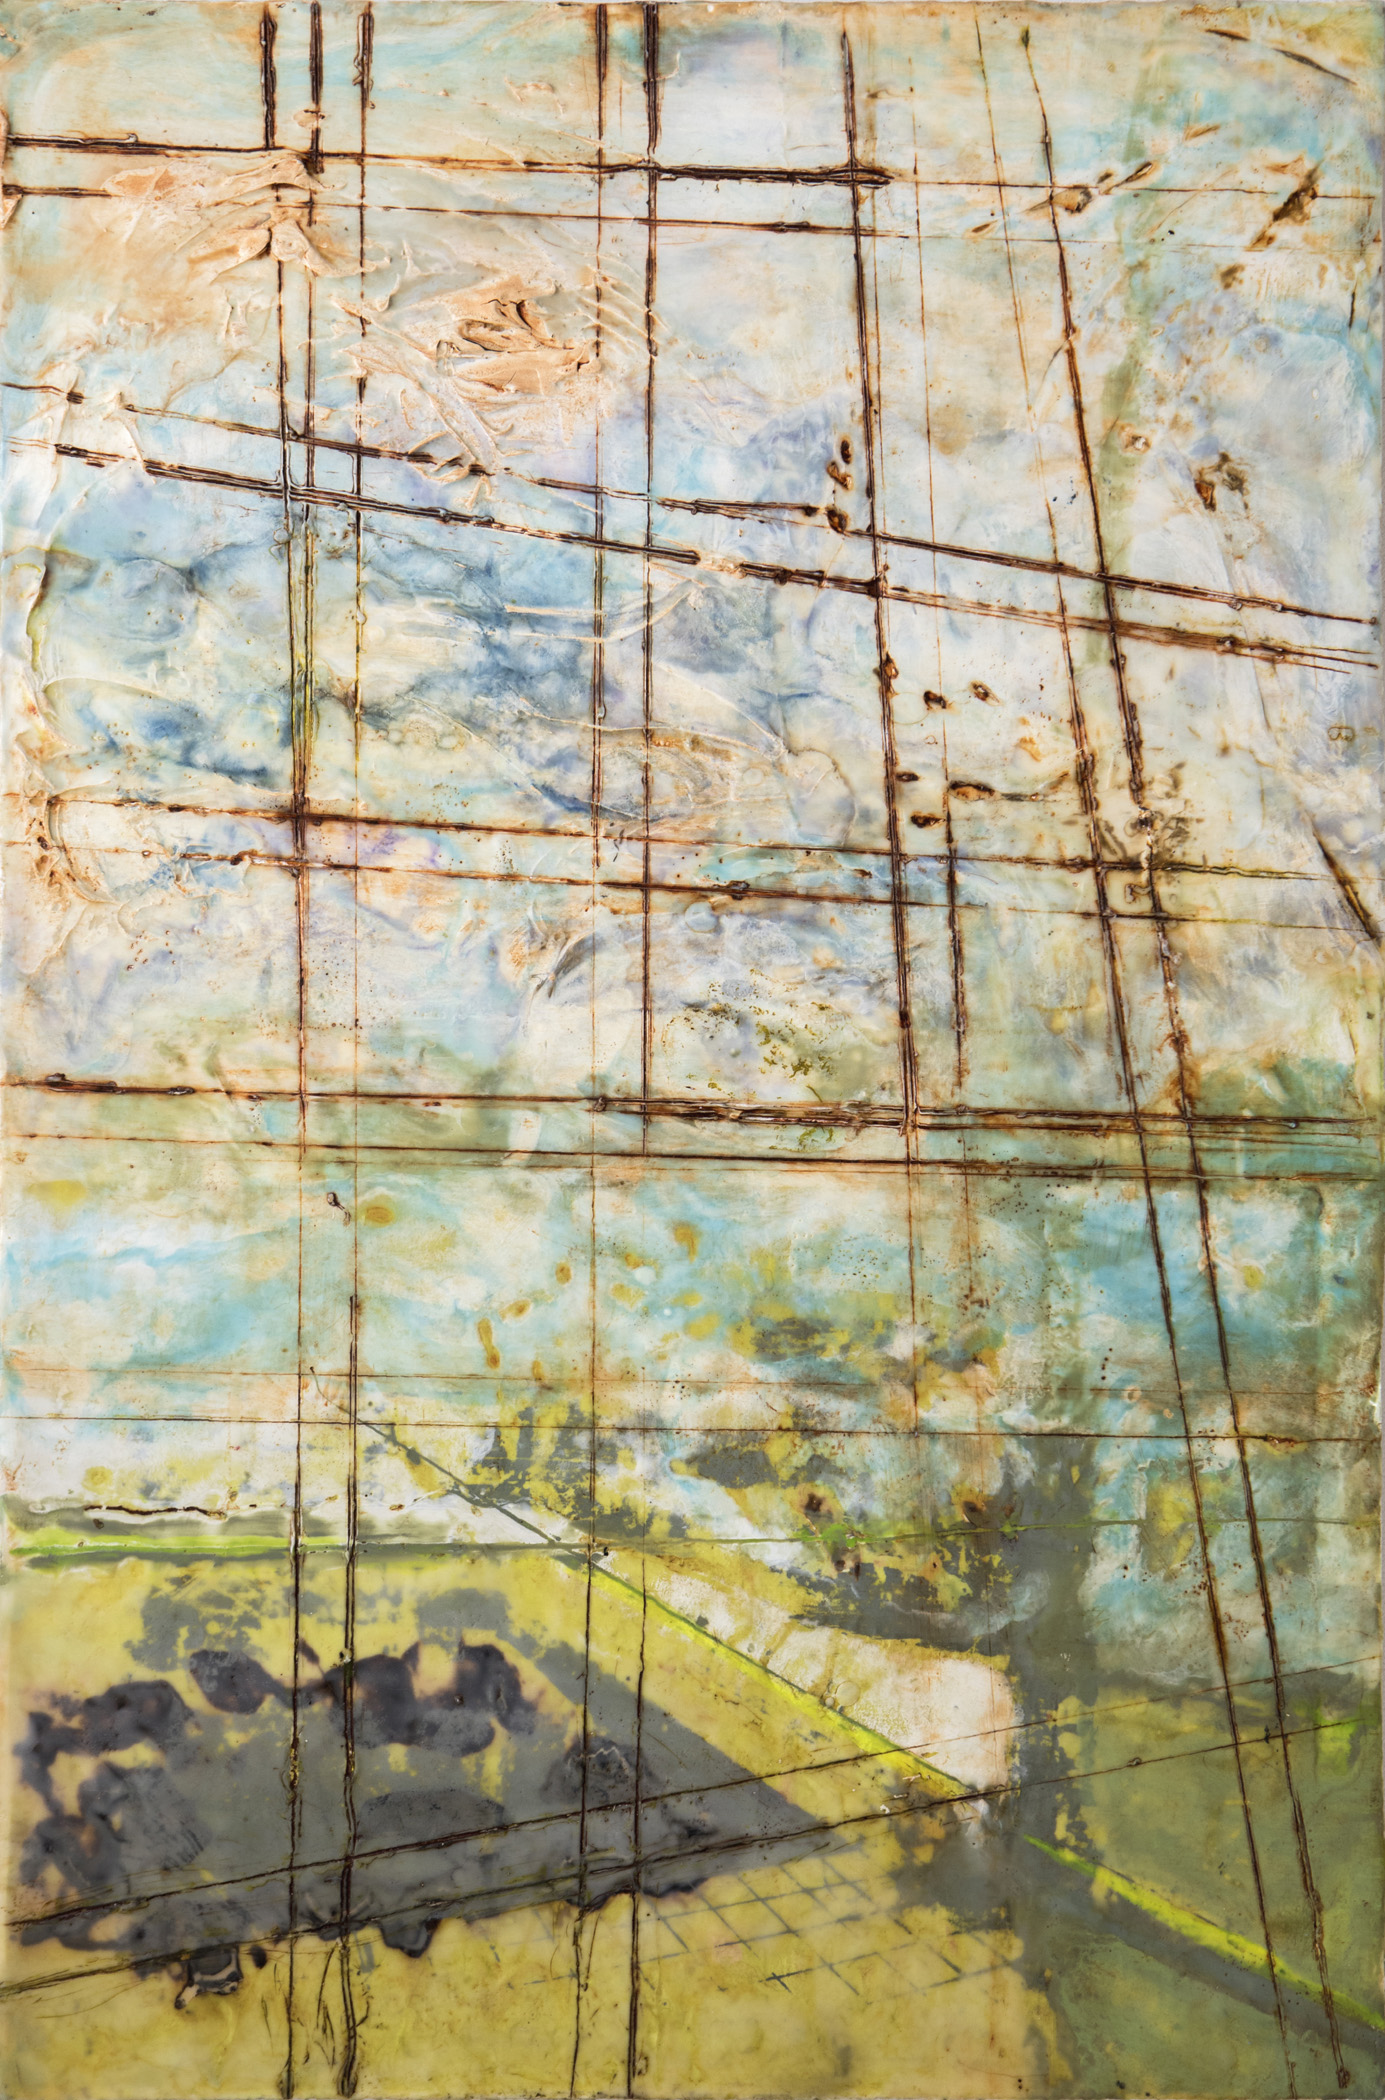 Binnie Birstein, Compound, 2017; encaustic, silkscreen, encaustic gesso, oil wash, joint compound, on panel; 36 x 24 inches Photo: Elisa Keogh